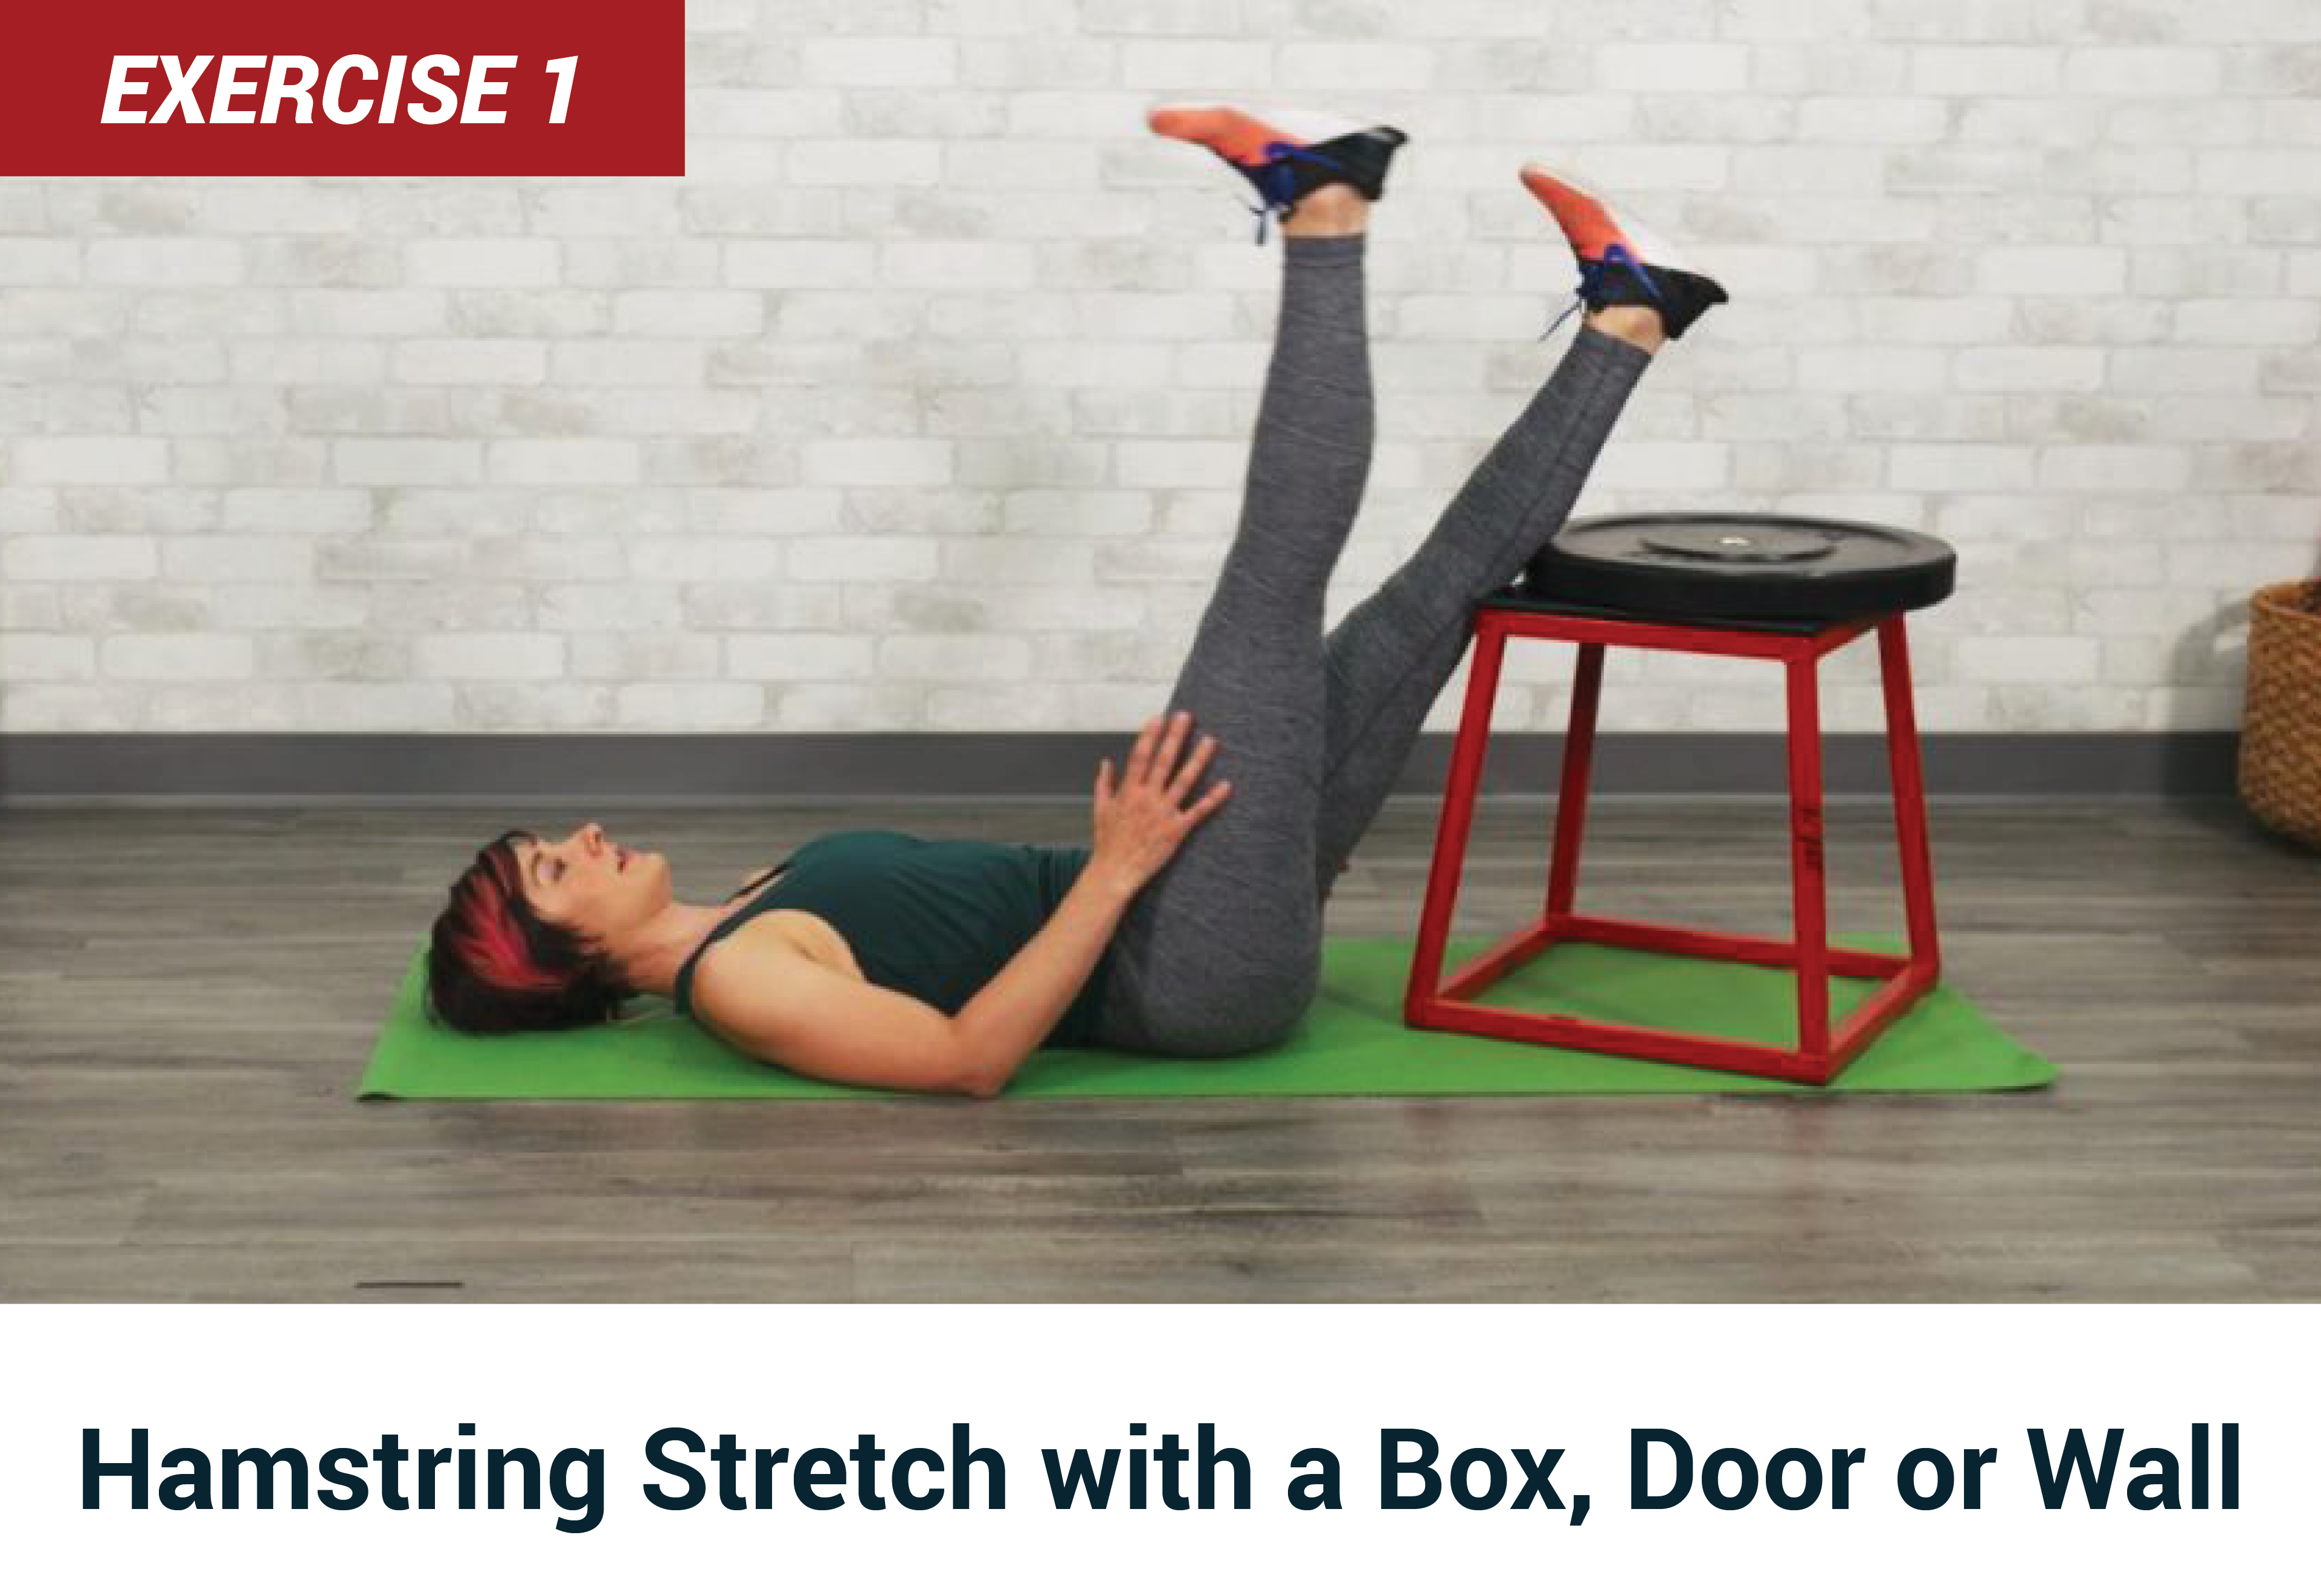 Hamstring stretch with a box